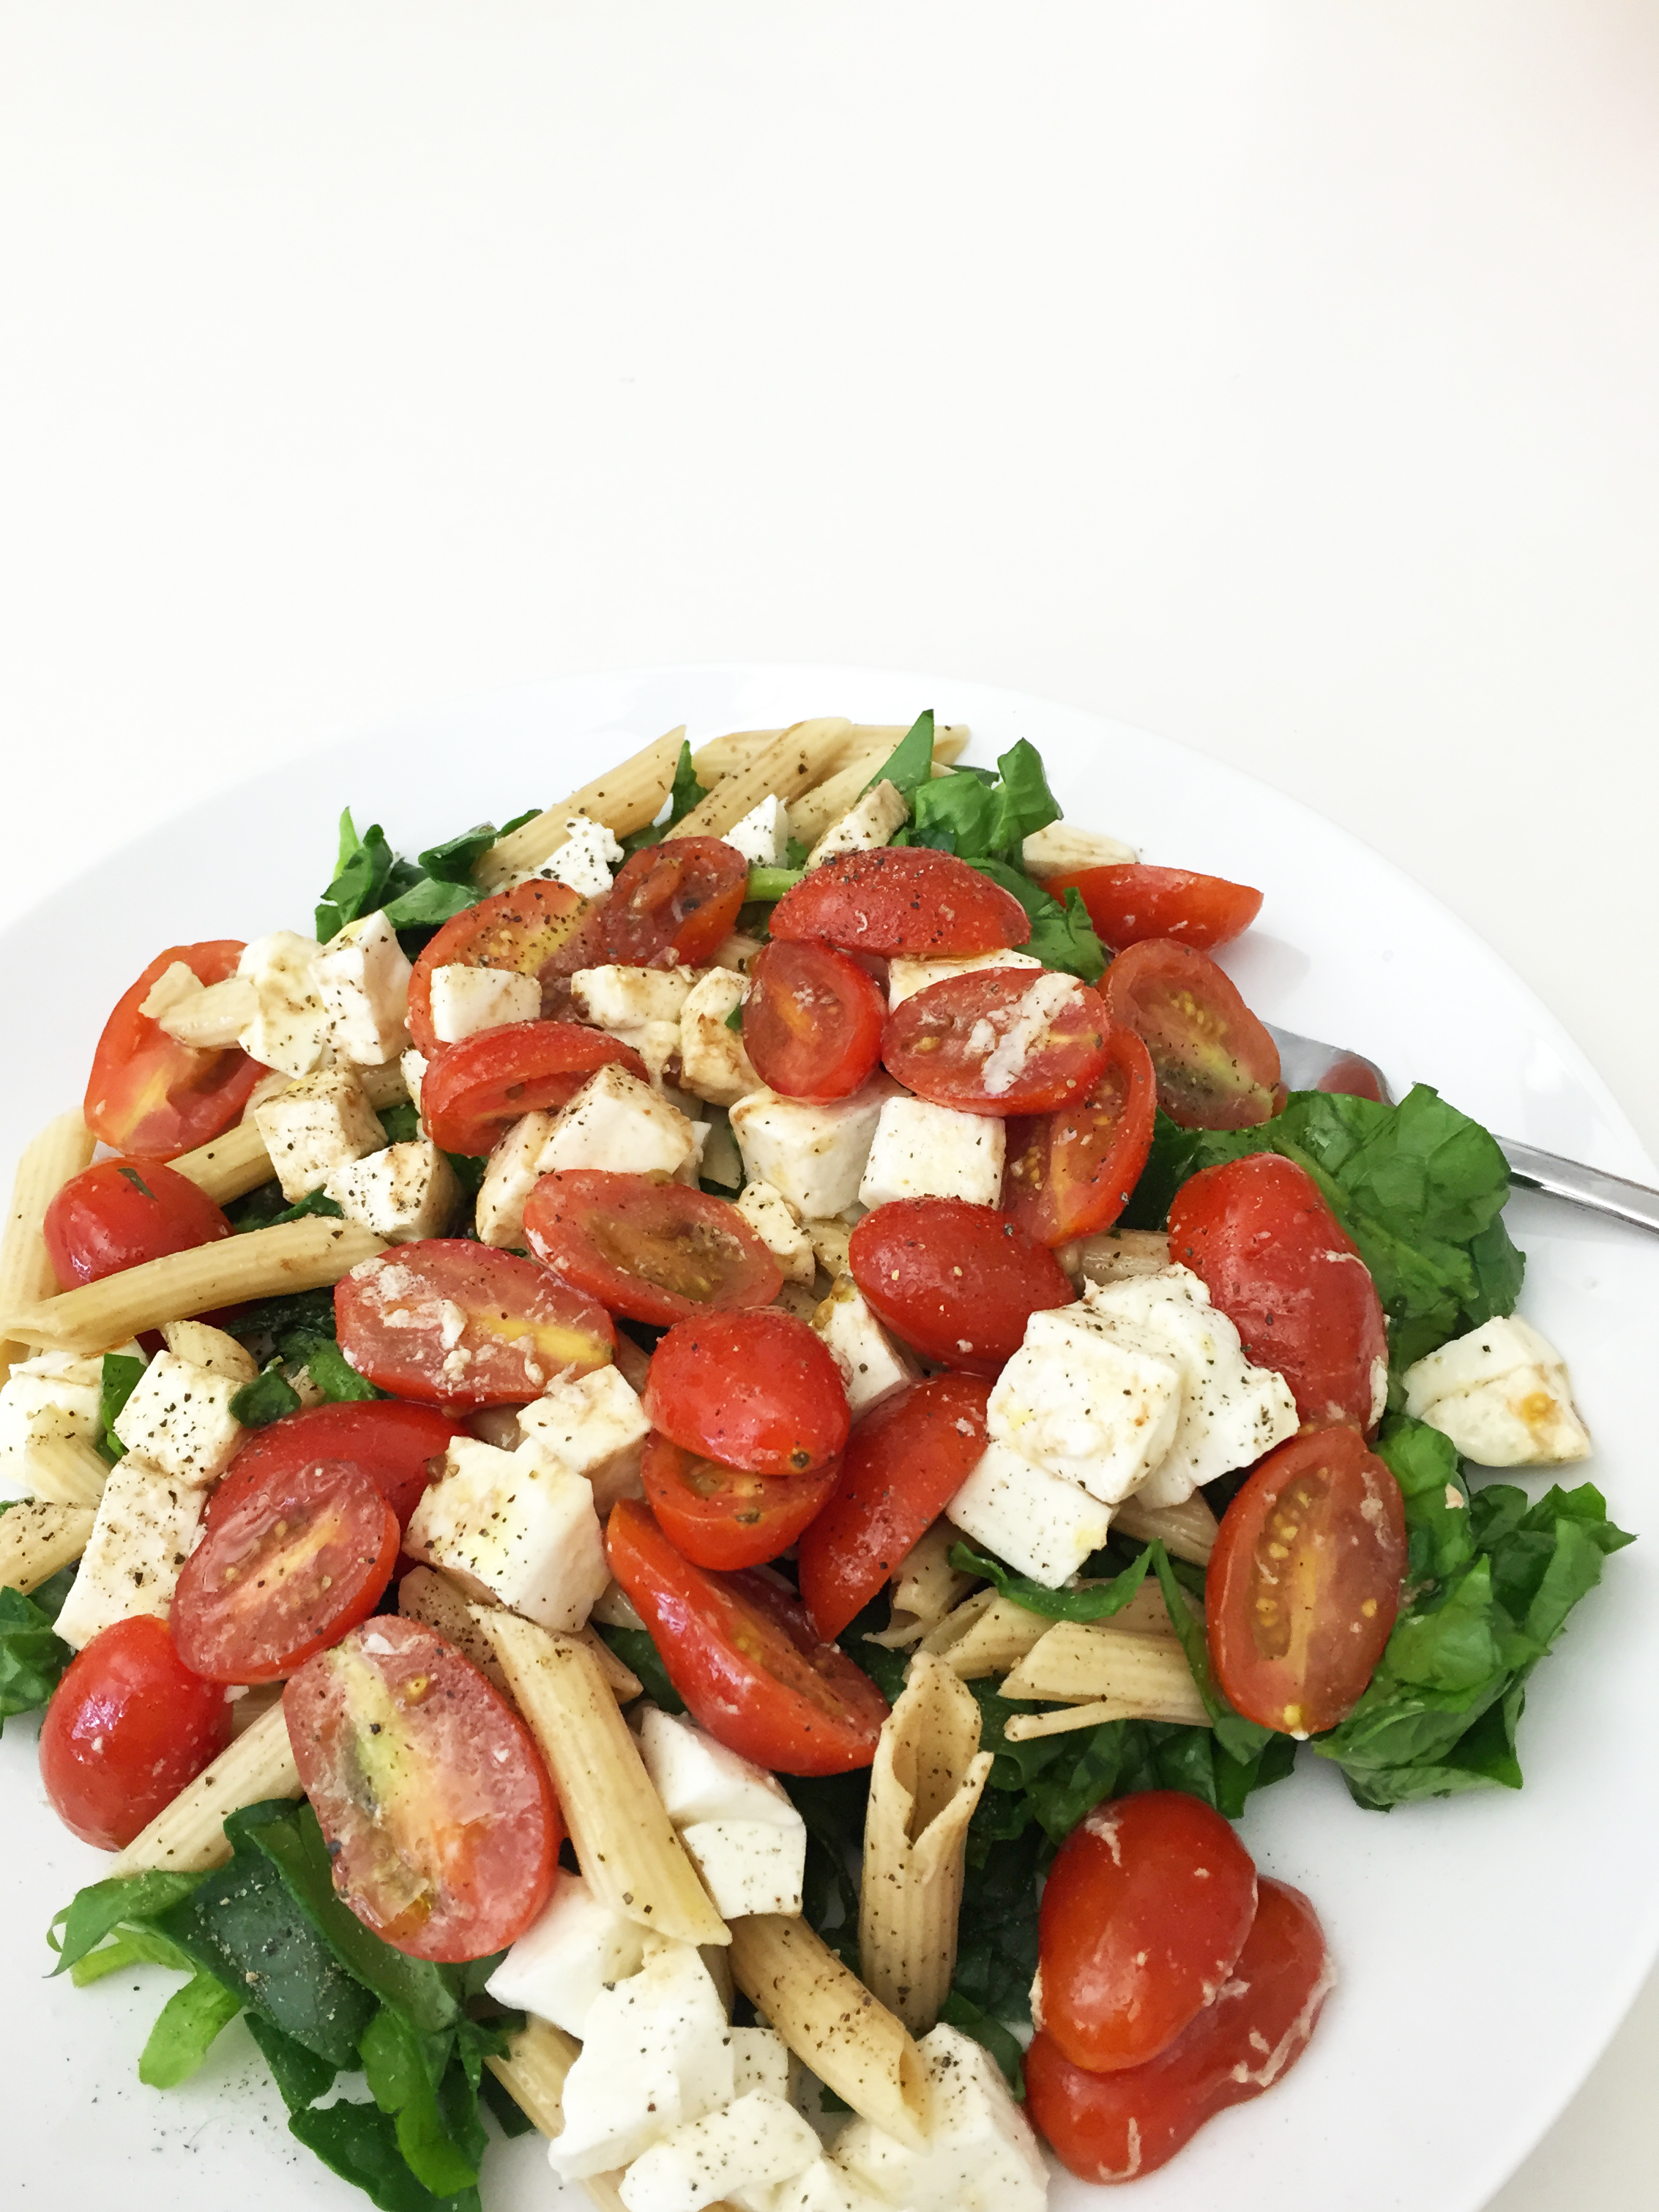 Olive oil, balsamic vinegar, tomatoes, mozzarella cheese, whole wheat penne, spinach, salt and pepper